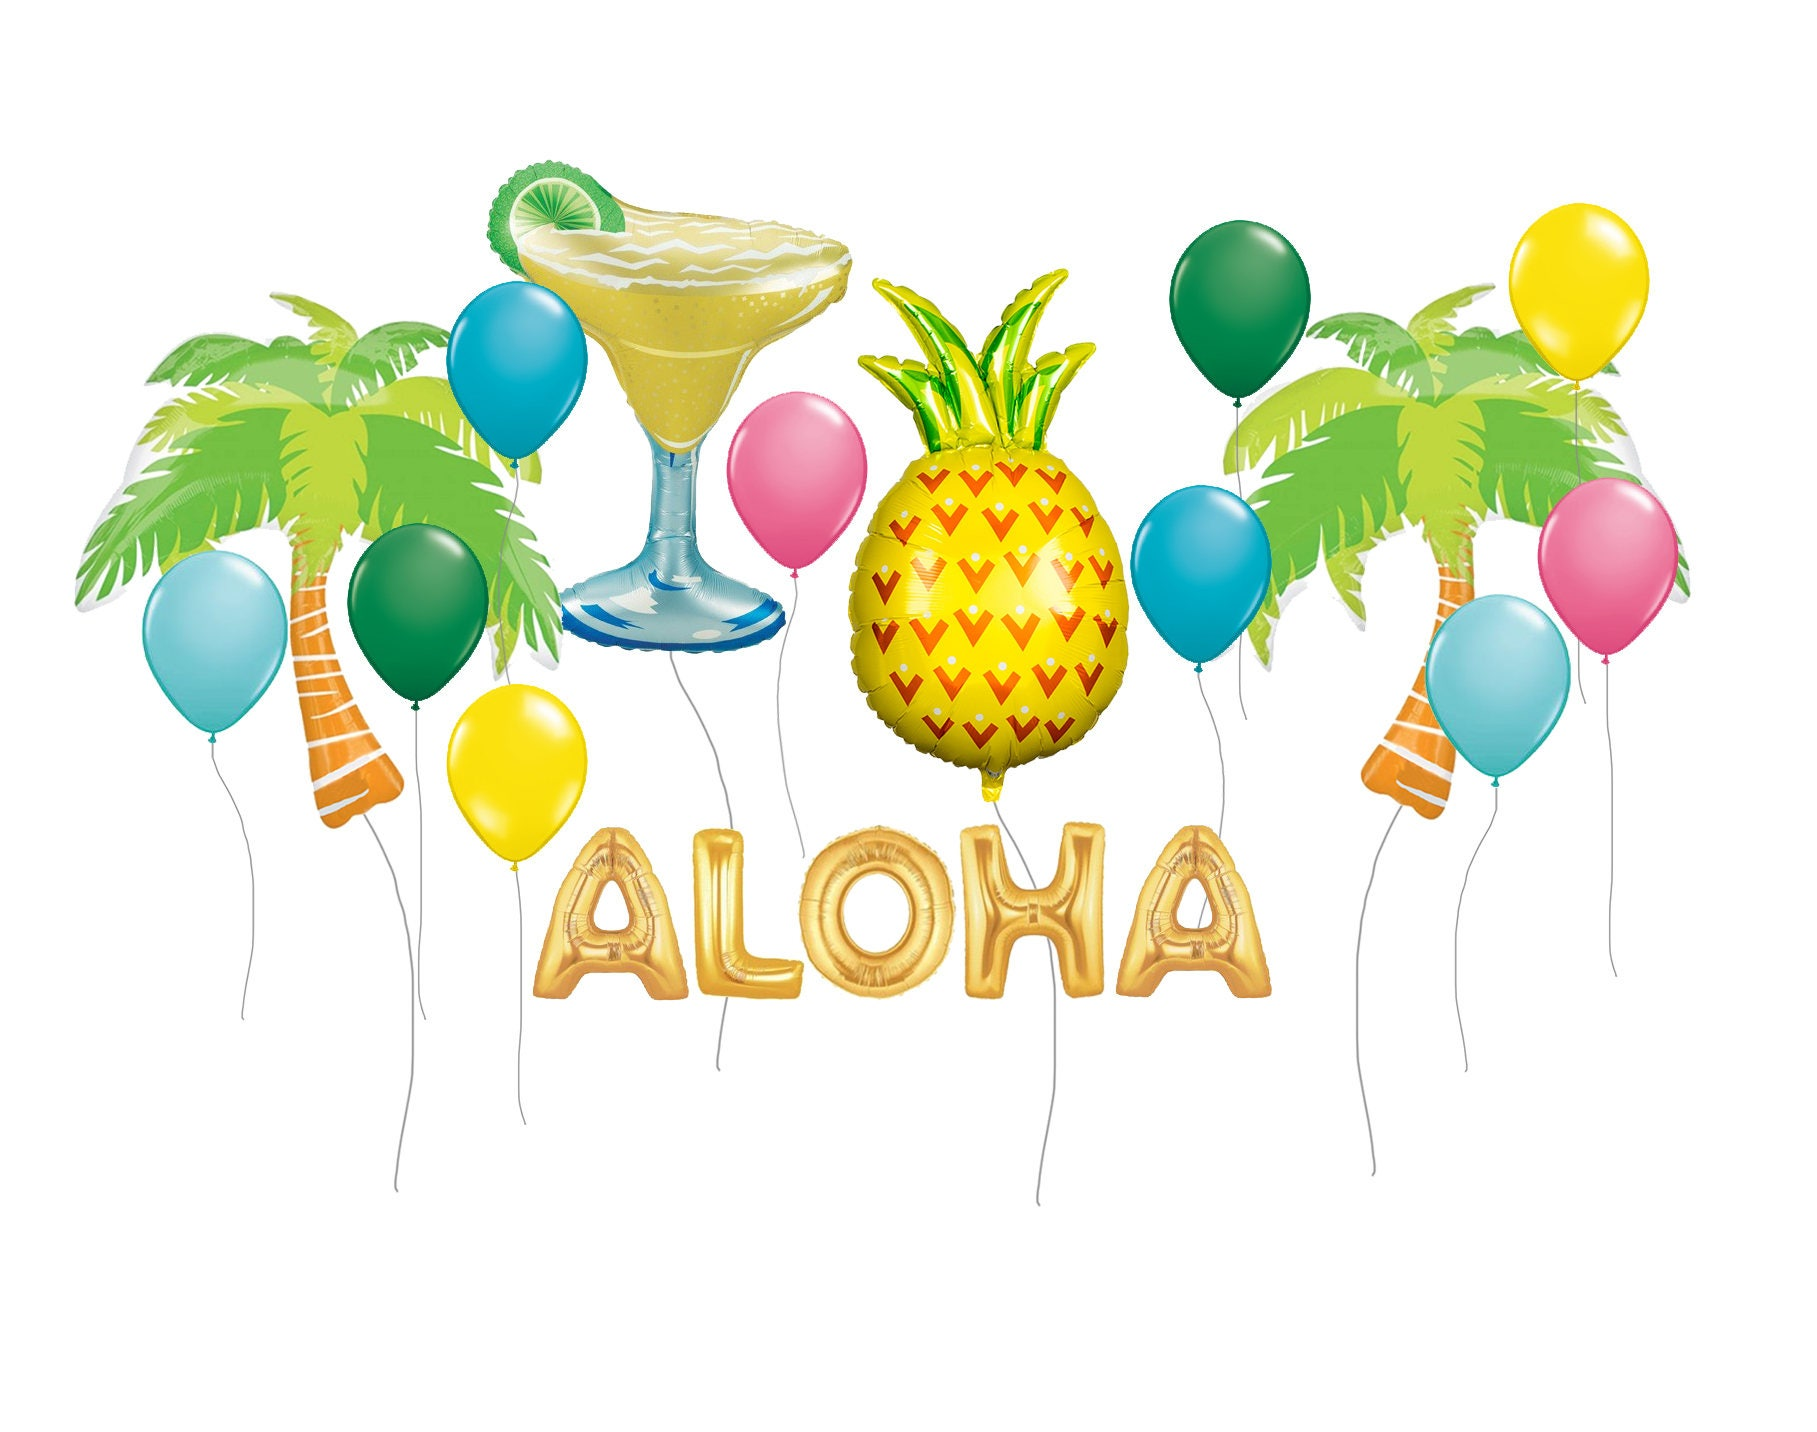 Balloon bouquet delivery balloon decorating 866 340 - Tropical Party Balloon Kit Pineapple Balloons Margarita Party Balloons Tropical Decor Pineapple Decor Summer Decor Luau Decor Balloons